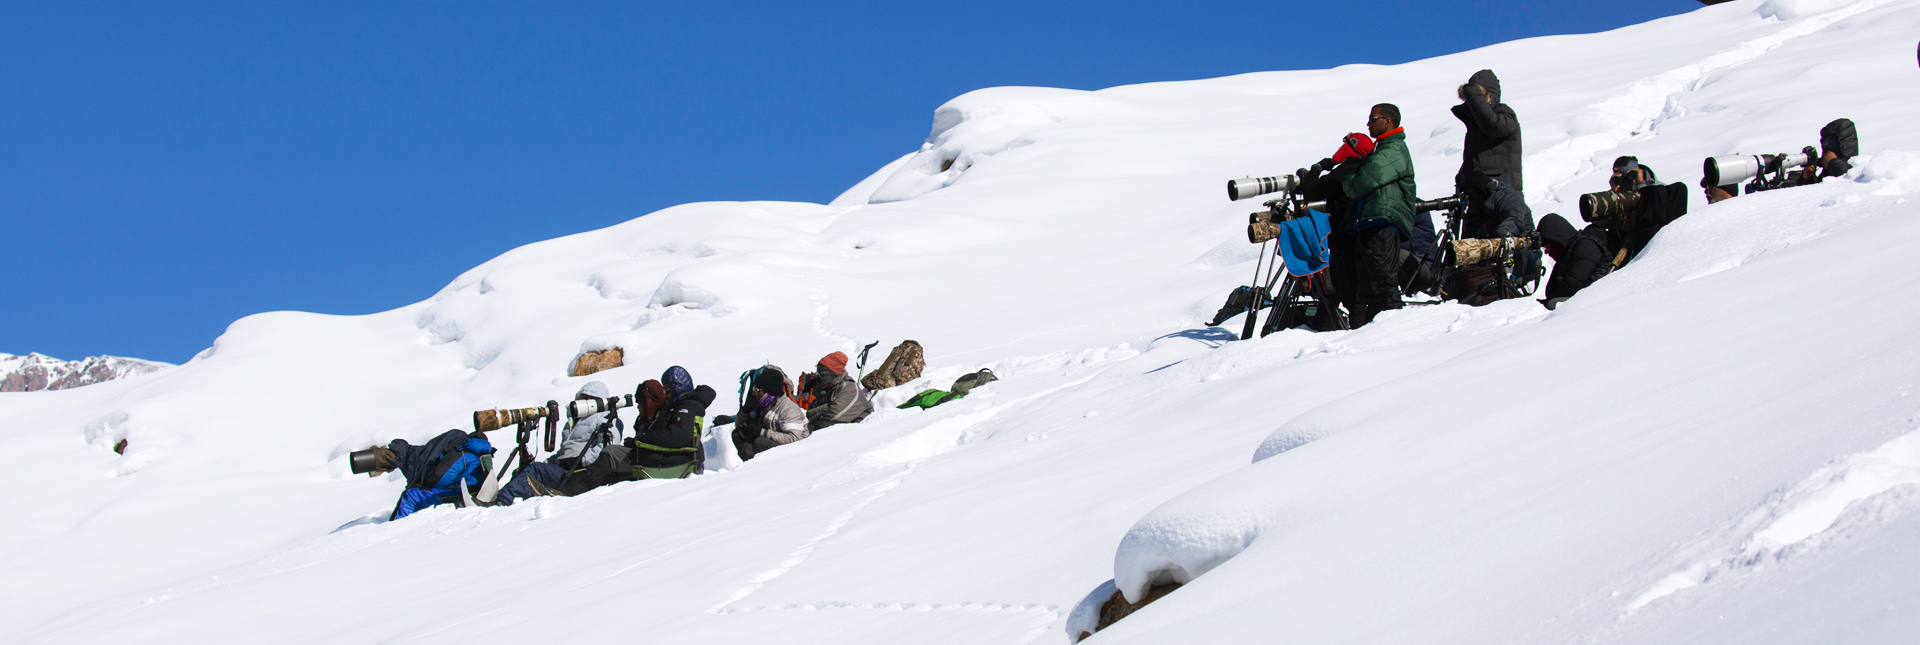 Photographers waiting and ready for the view of a snow leopard